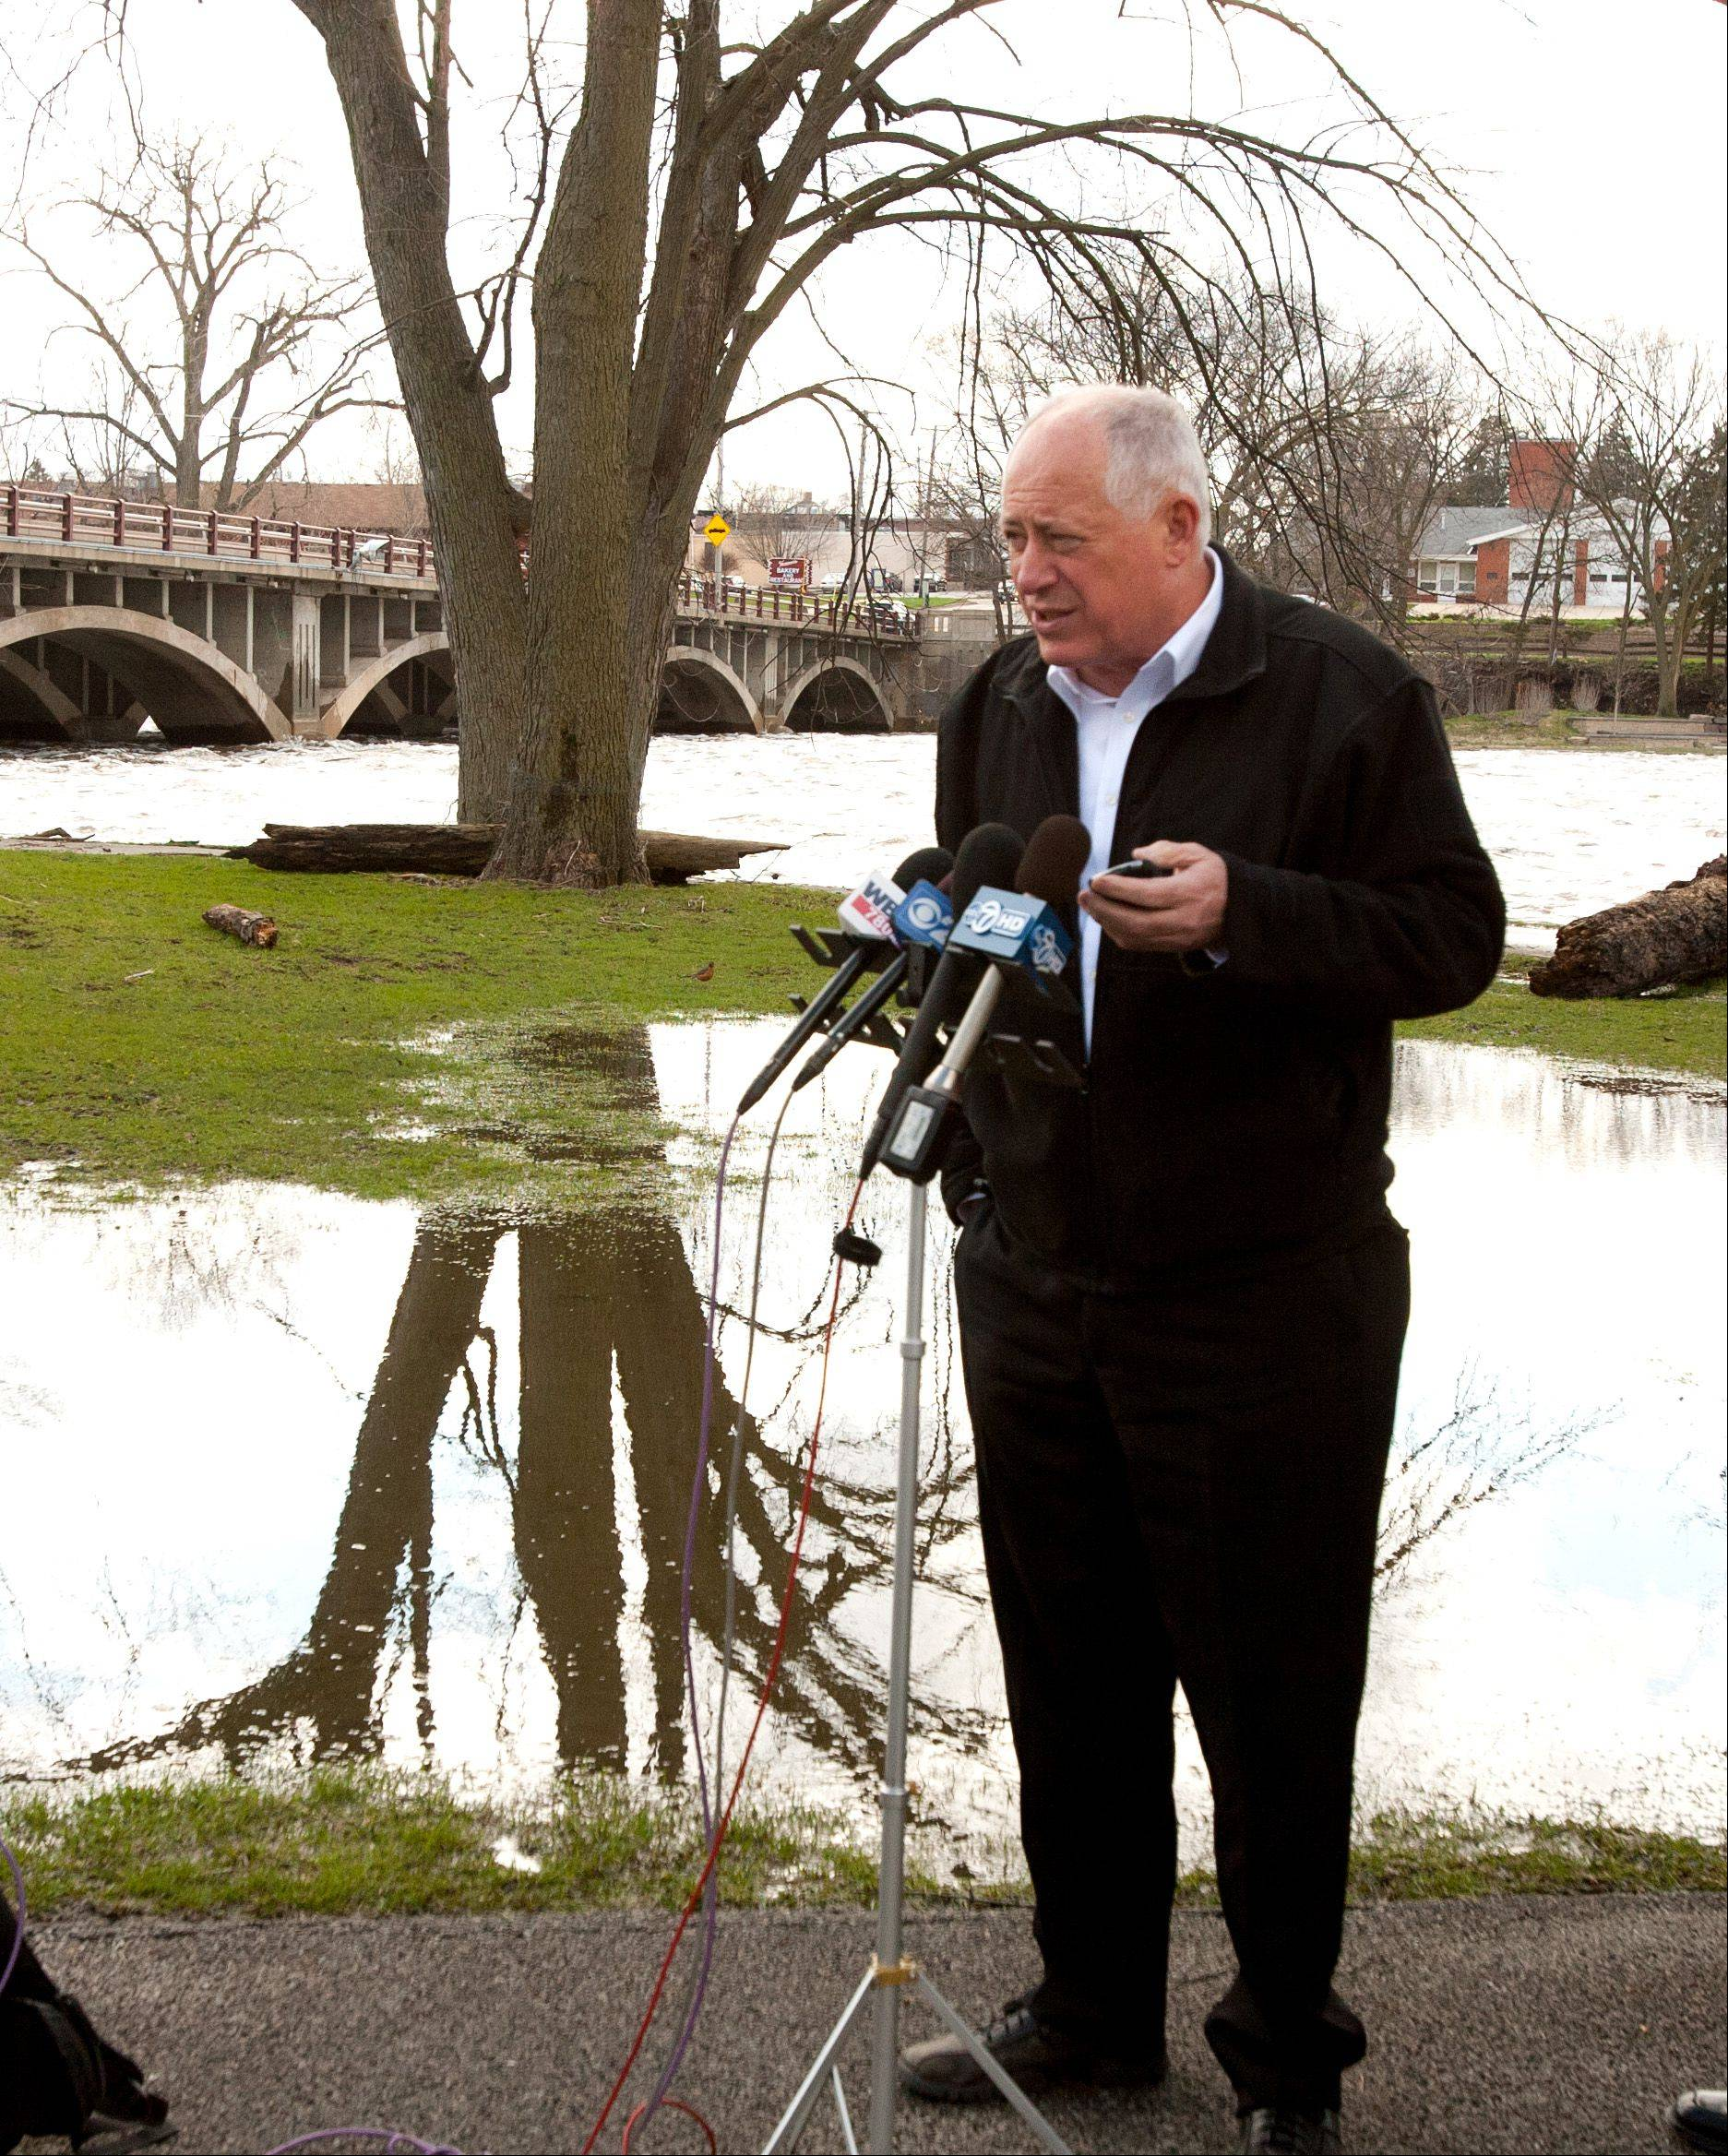 Gov. Pat Quinn addresses flooding concerns throughout the state, during a press conference along the Fox River in North Aurora.